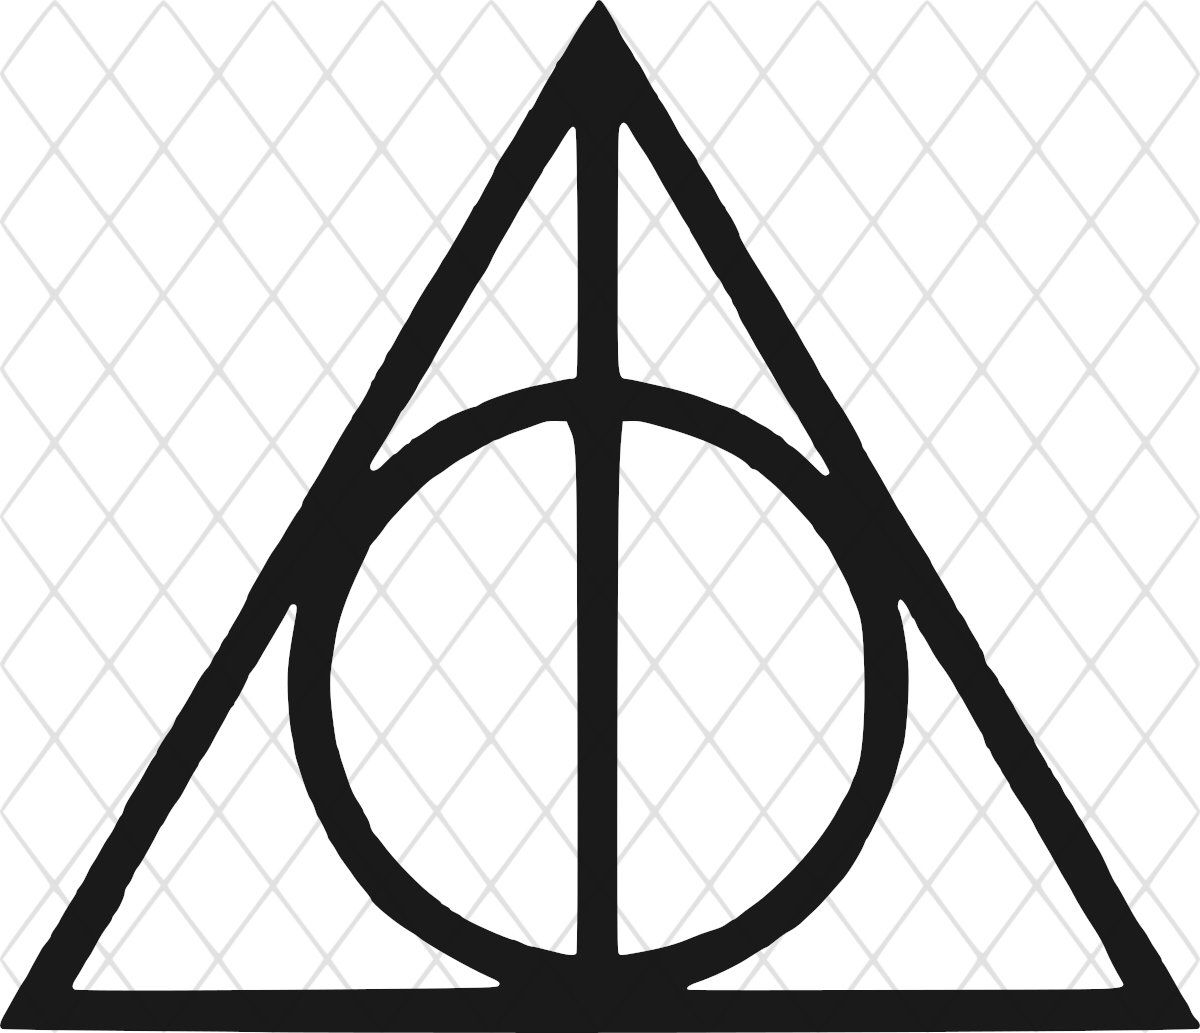 Excited To Share The Latest Addition To My Etsy Shop Harry Potter Deathly Hallows Icon Svg Png Harry Potter Deathly Hallows Etsy Deathly Hallows